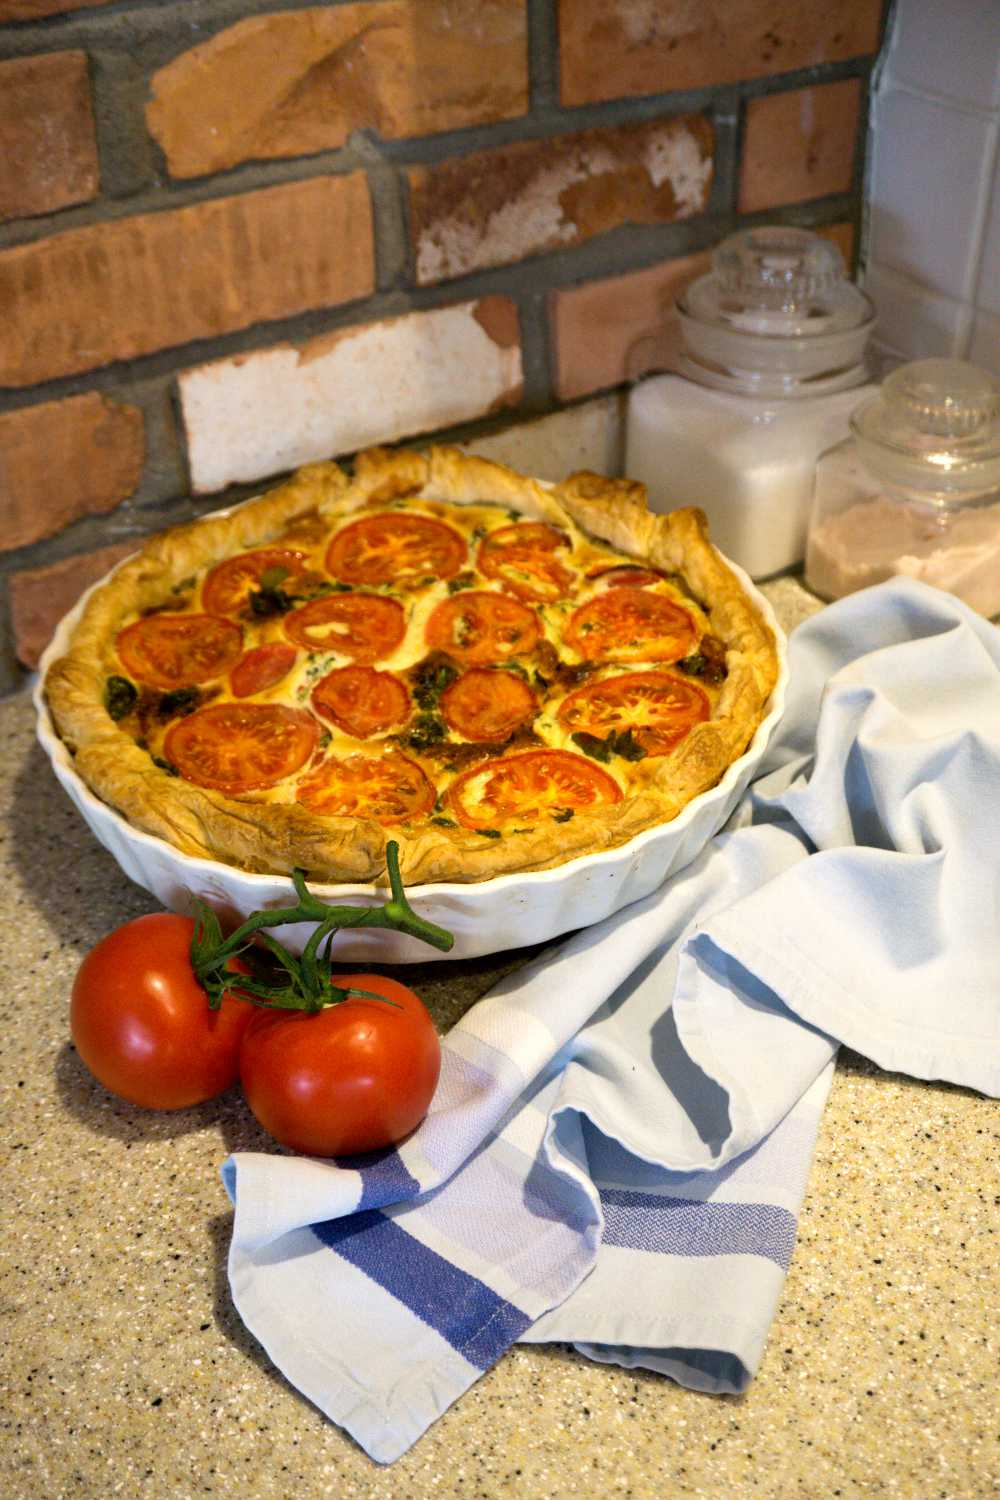 Quiche and tomatoes in front of a rustic brick wall